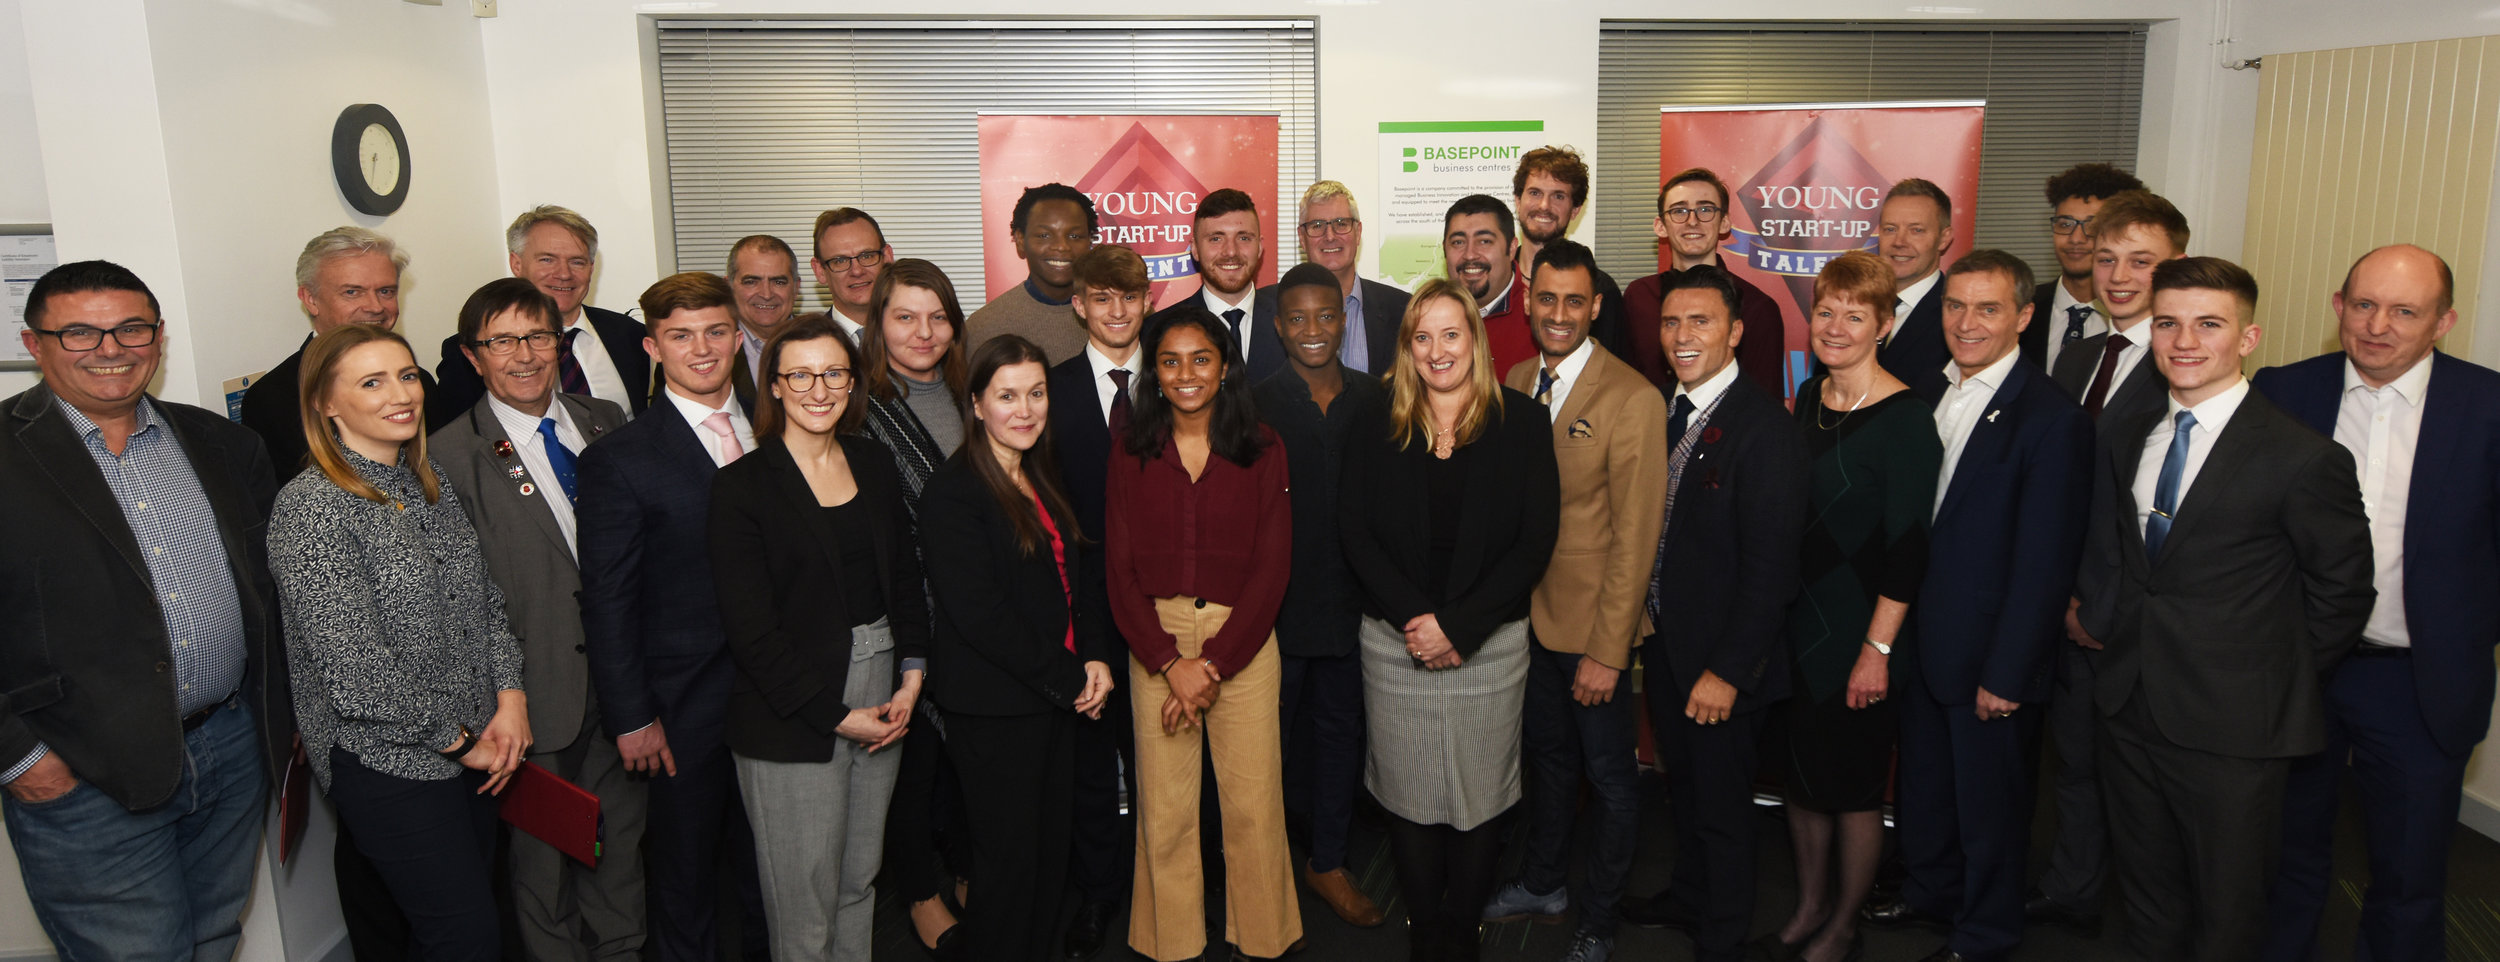 Young Start-up Talent - 2019 judges, sponsors and young entrepreneurs at Basepoint Crawley